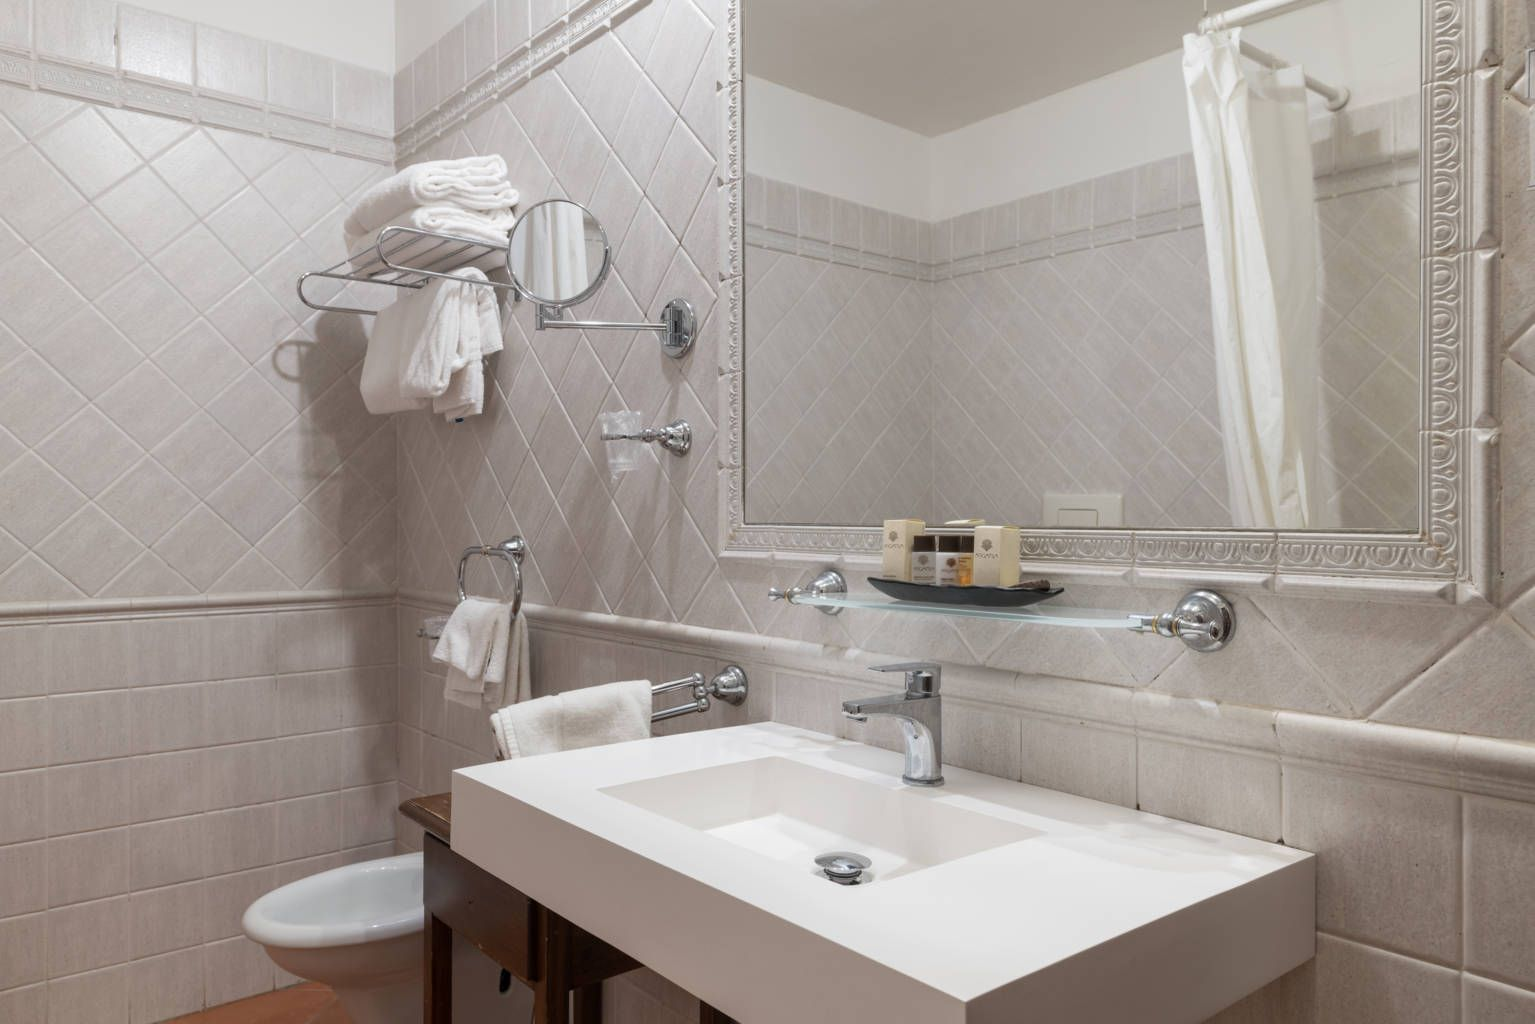 Pin by hotel europa on new rooms new style pinterest